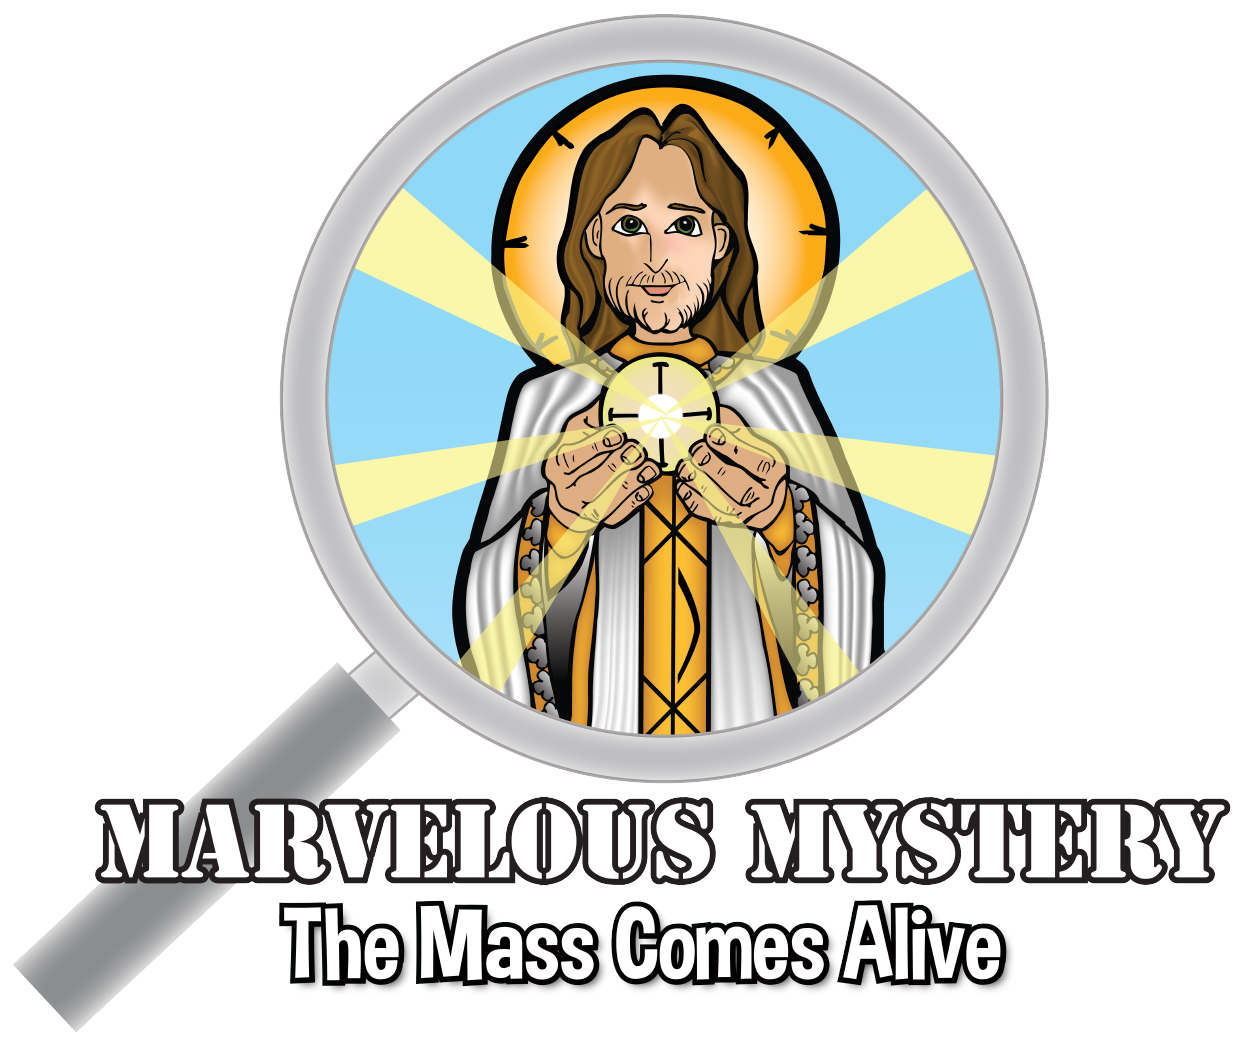 Marvelous Mystery Logo smaller